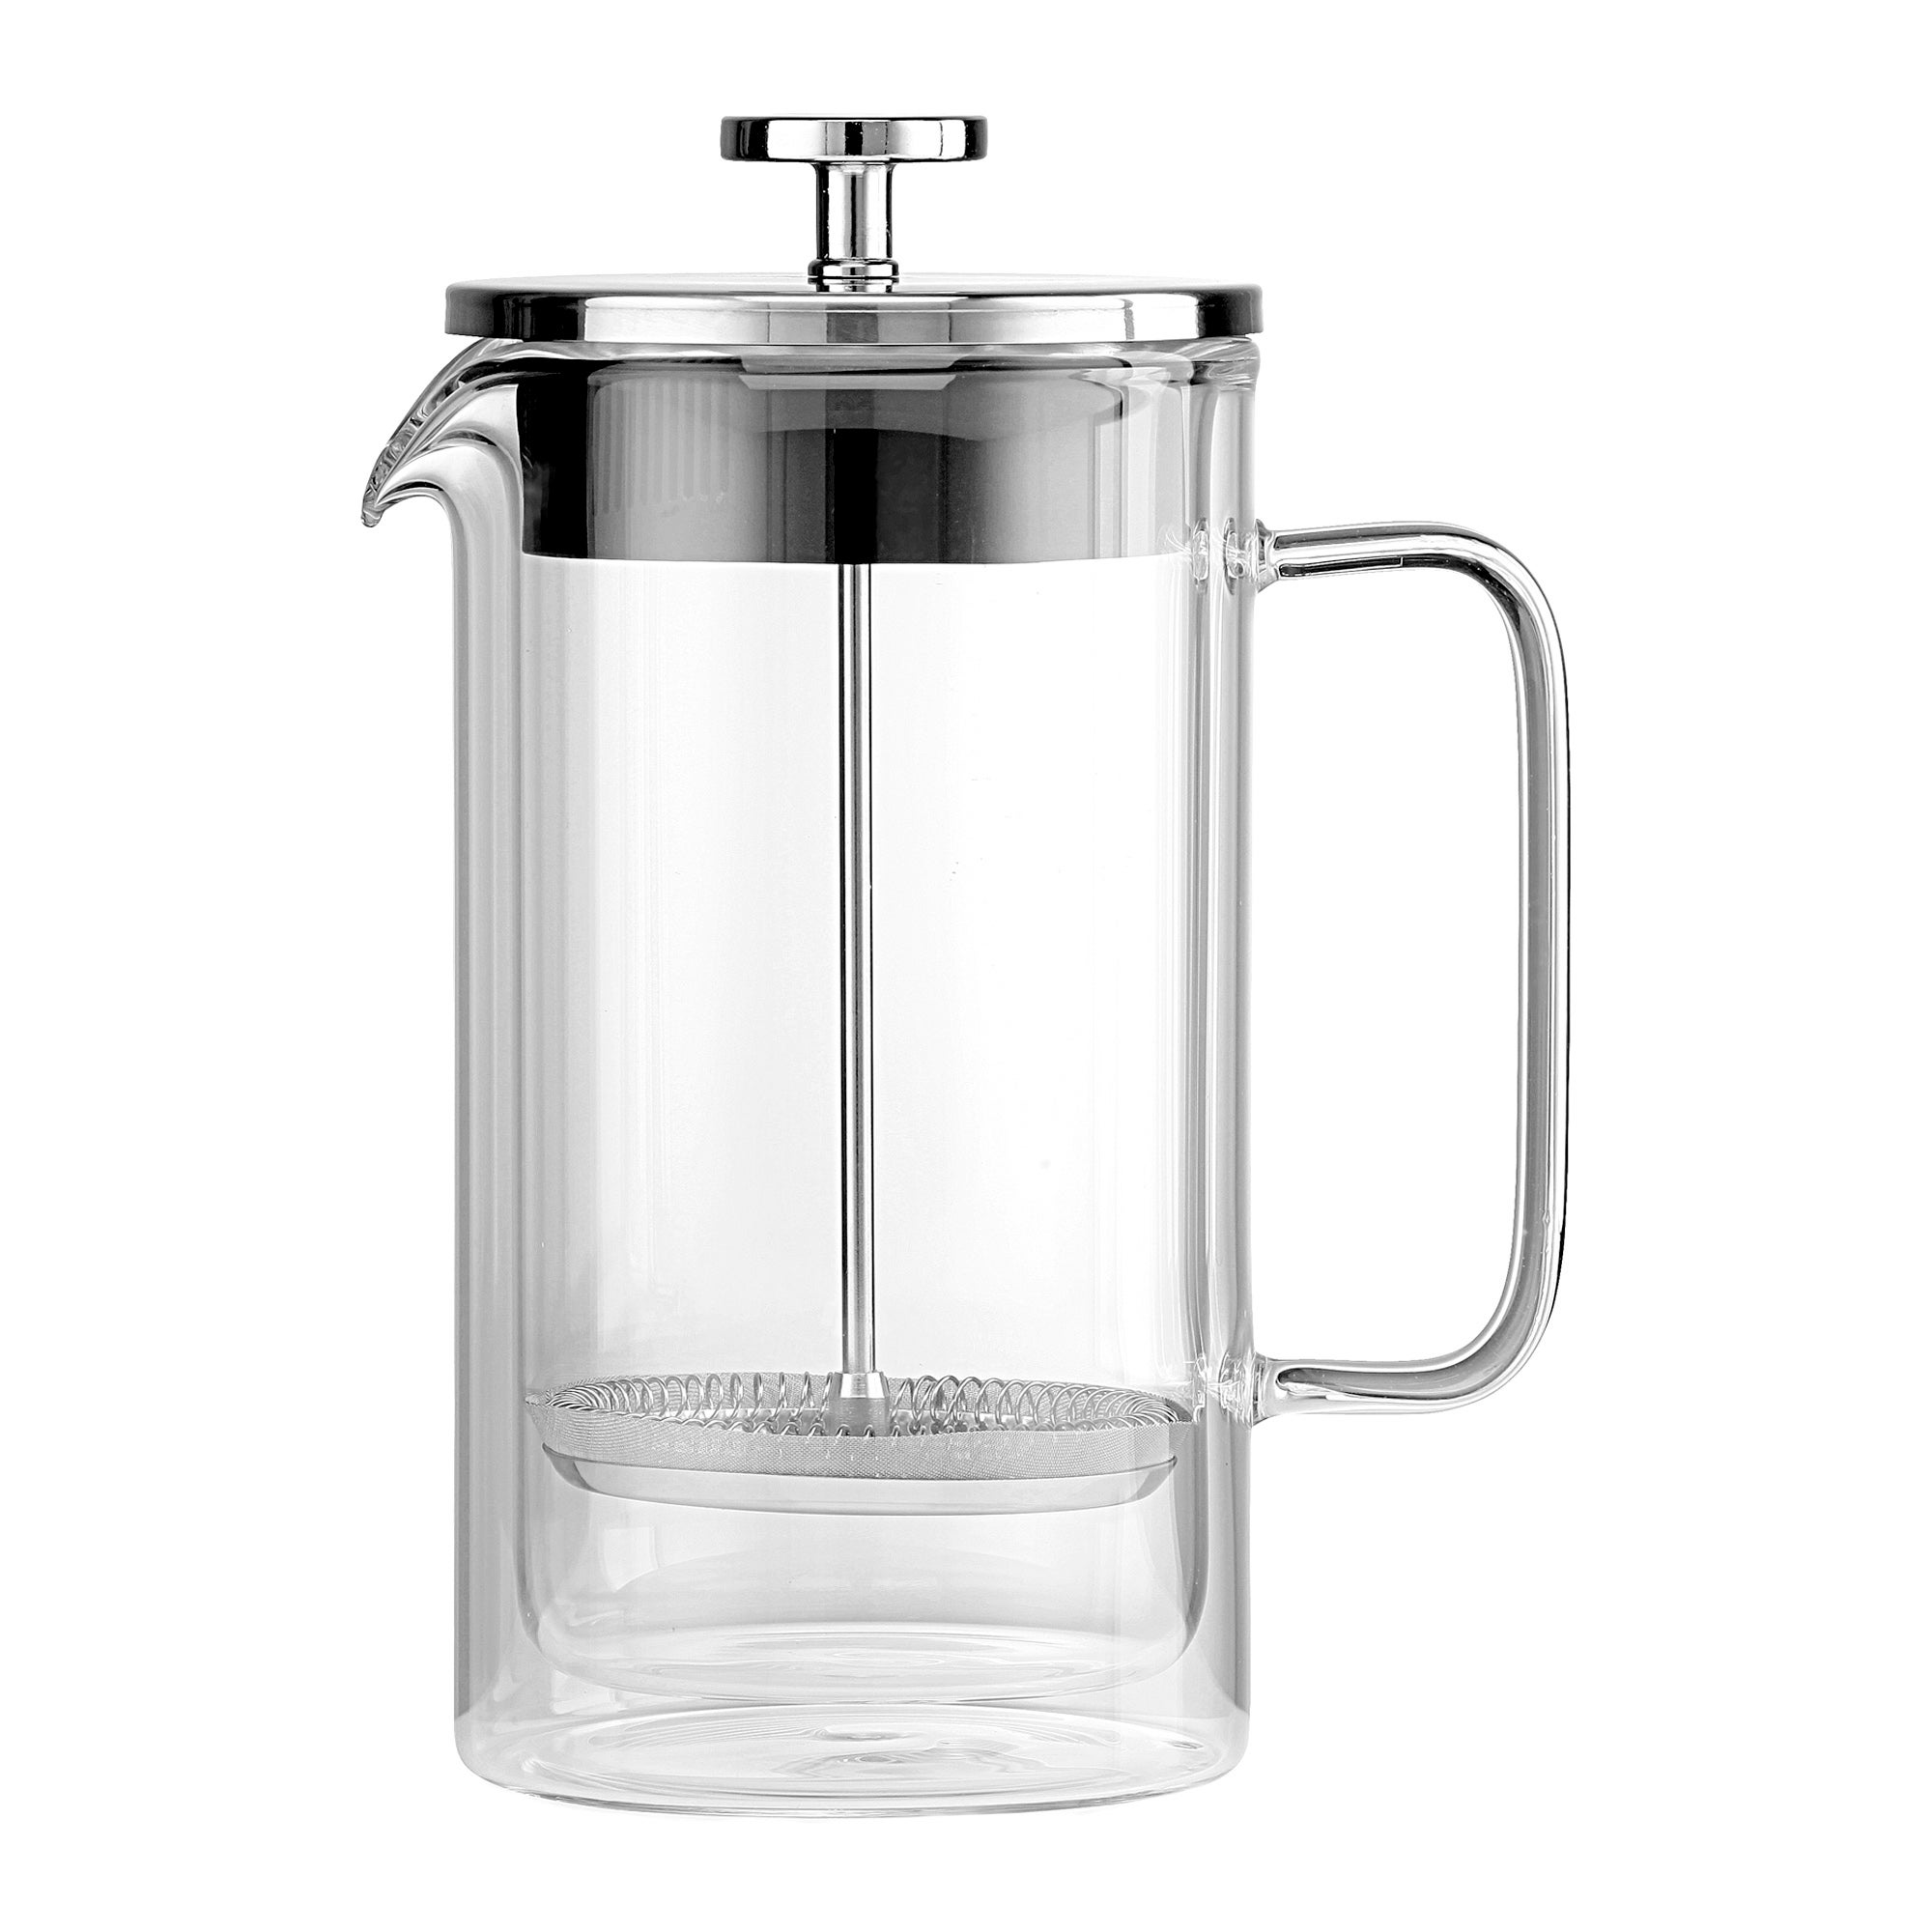 Photo of La cafetiere boheme double walled coffee press clear